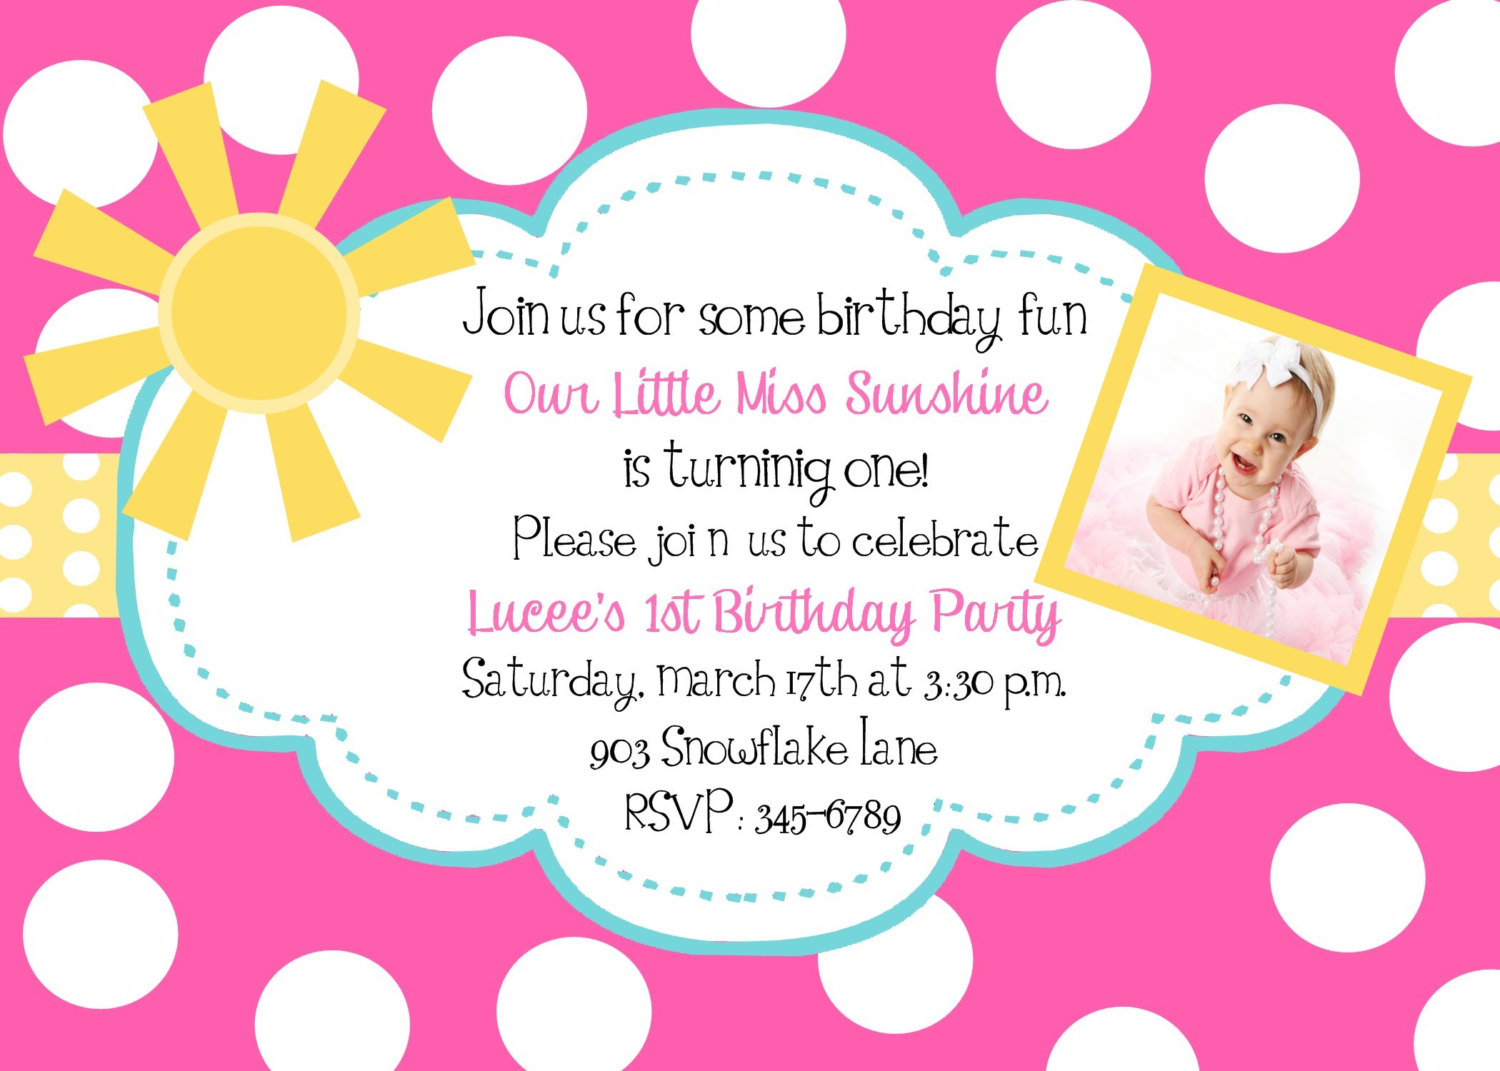 5th birthday party invitation wording mickey mouse invitations staggering 5th birthday party invitation wording staggering 5th birthday party invitation wording filmwisefo Images